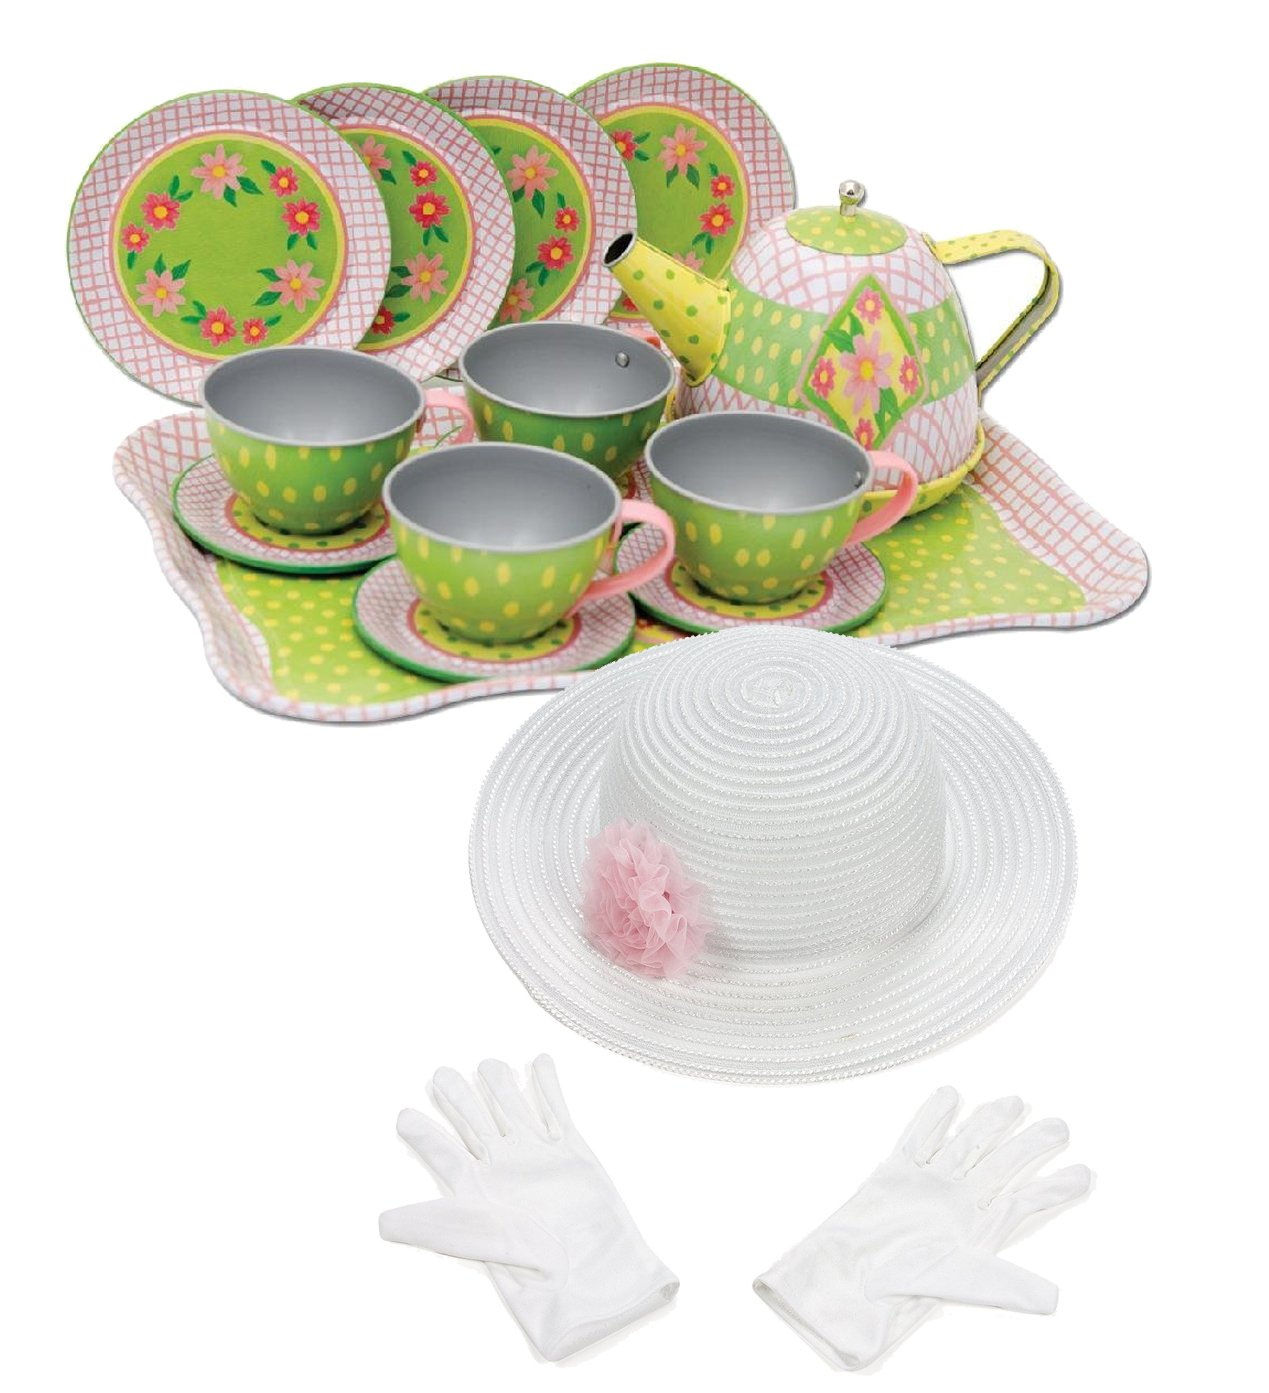 Schylling Floral Tin Tea Set in a Case with Fun Express Polyester Tea Party Hat and Gloves Set